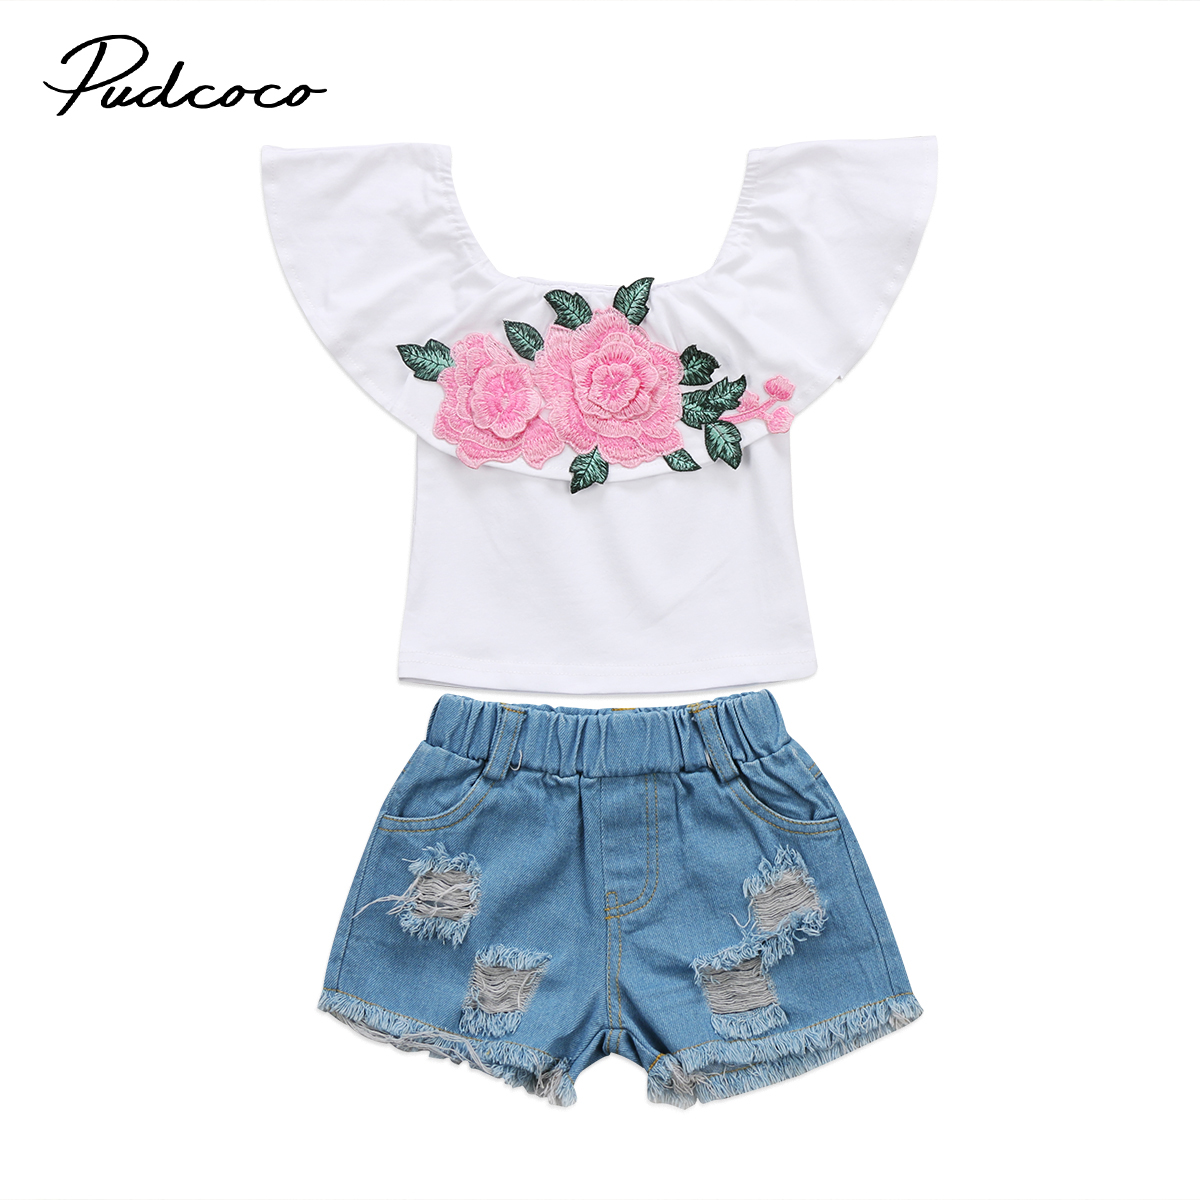 Fashion Kids Baby Girls Embroidery Floral Shirts Off Shoulder Tops Ripped Shorts Denim Jeans 2pcs Outfits Set Clothes Summer